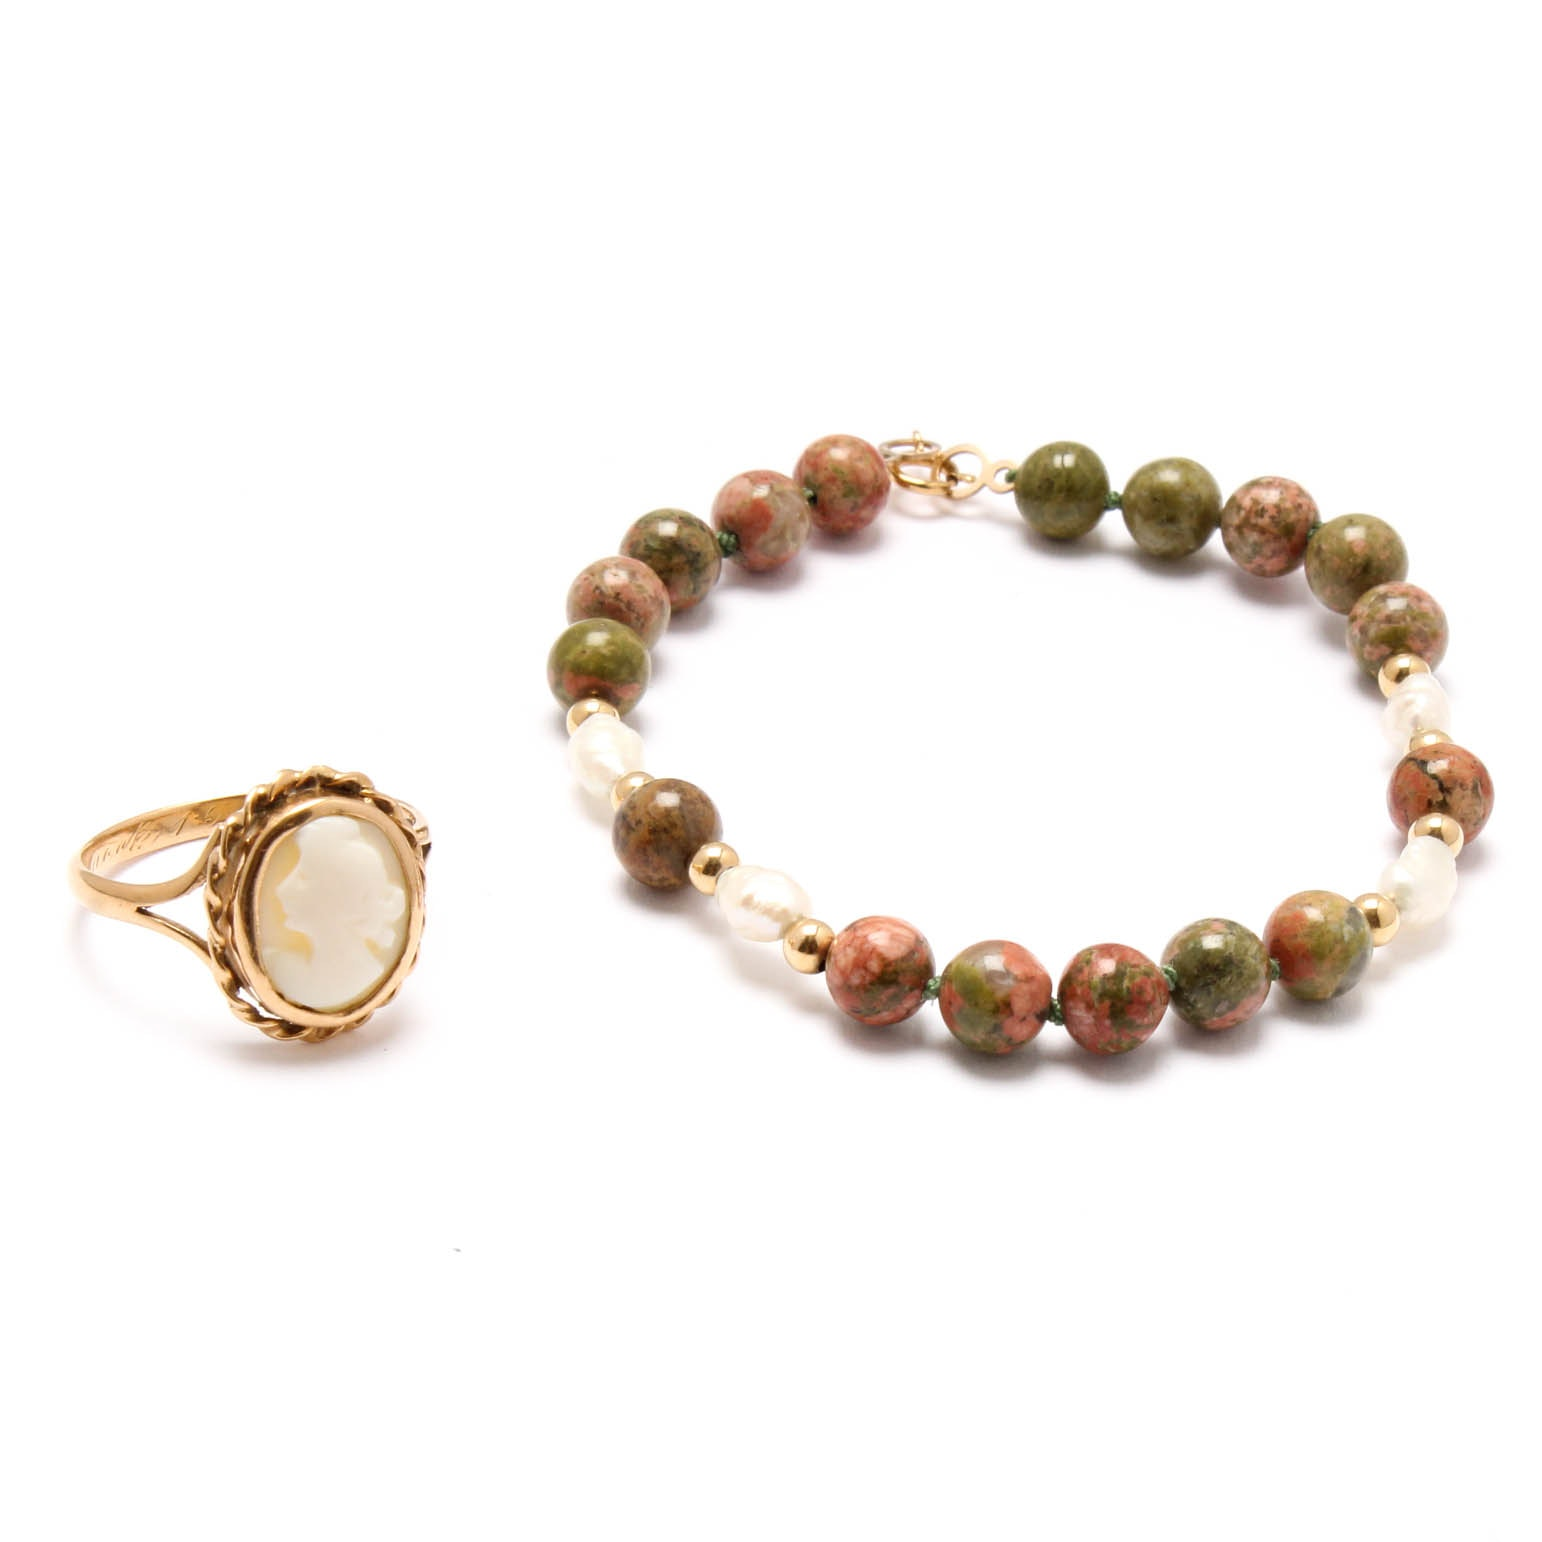 18K Yellow Gold Ring and 14K Yellow Gold Agate and Cultured Pearl Bracelet